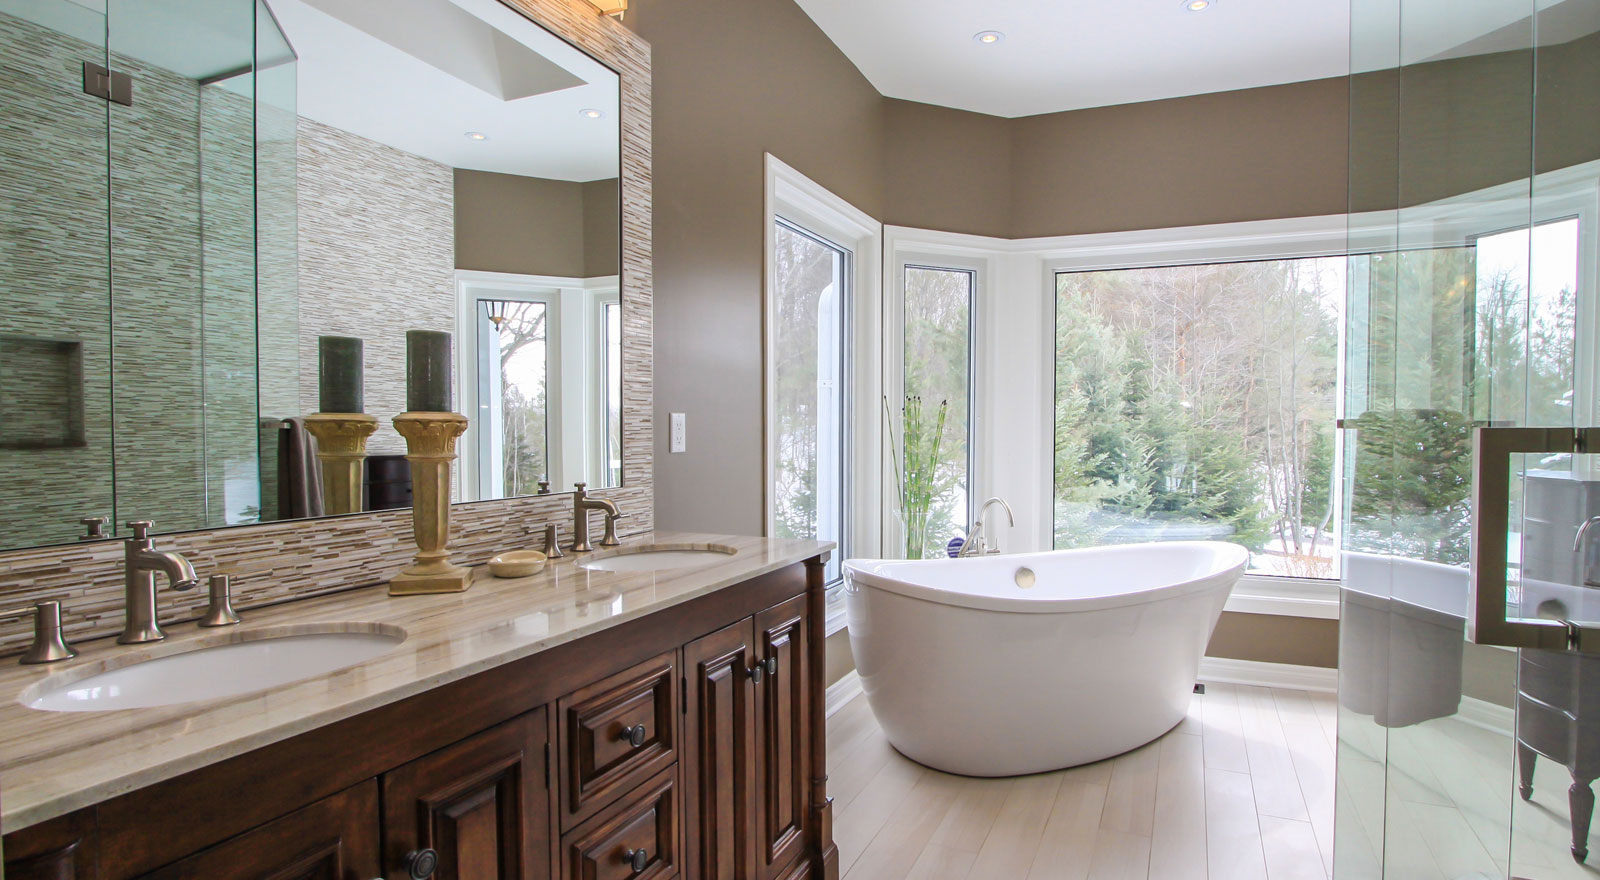 Bathroom Renovation and Design Barrie Ontario